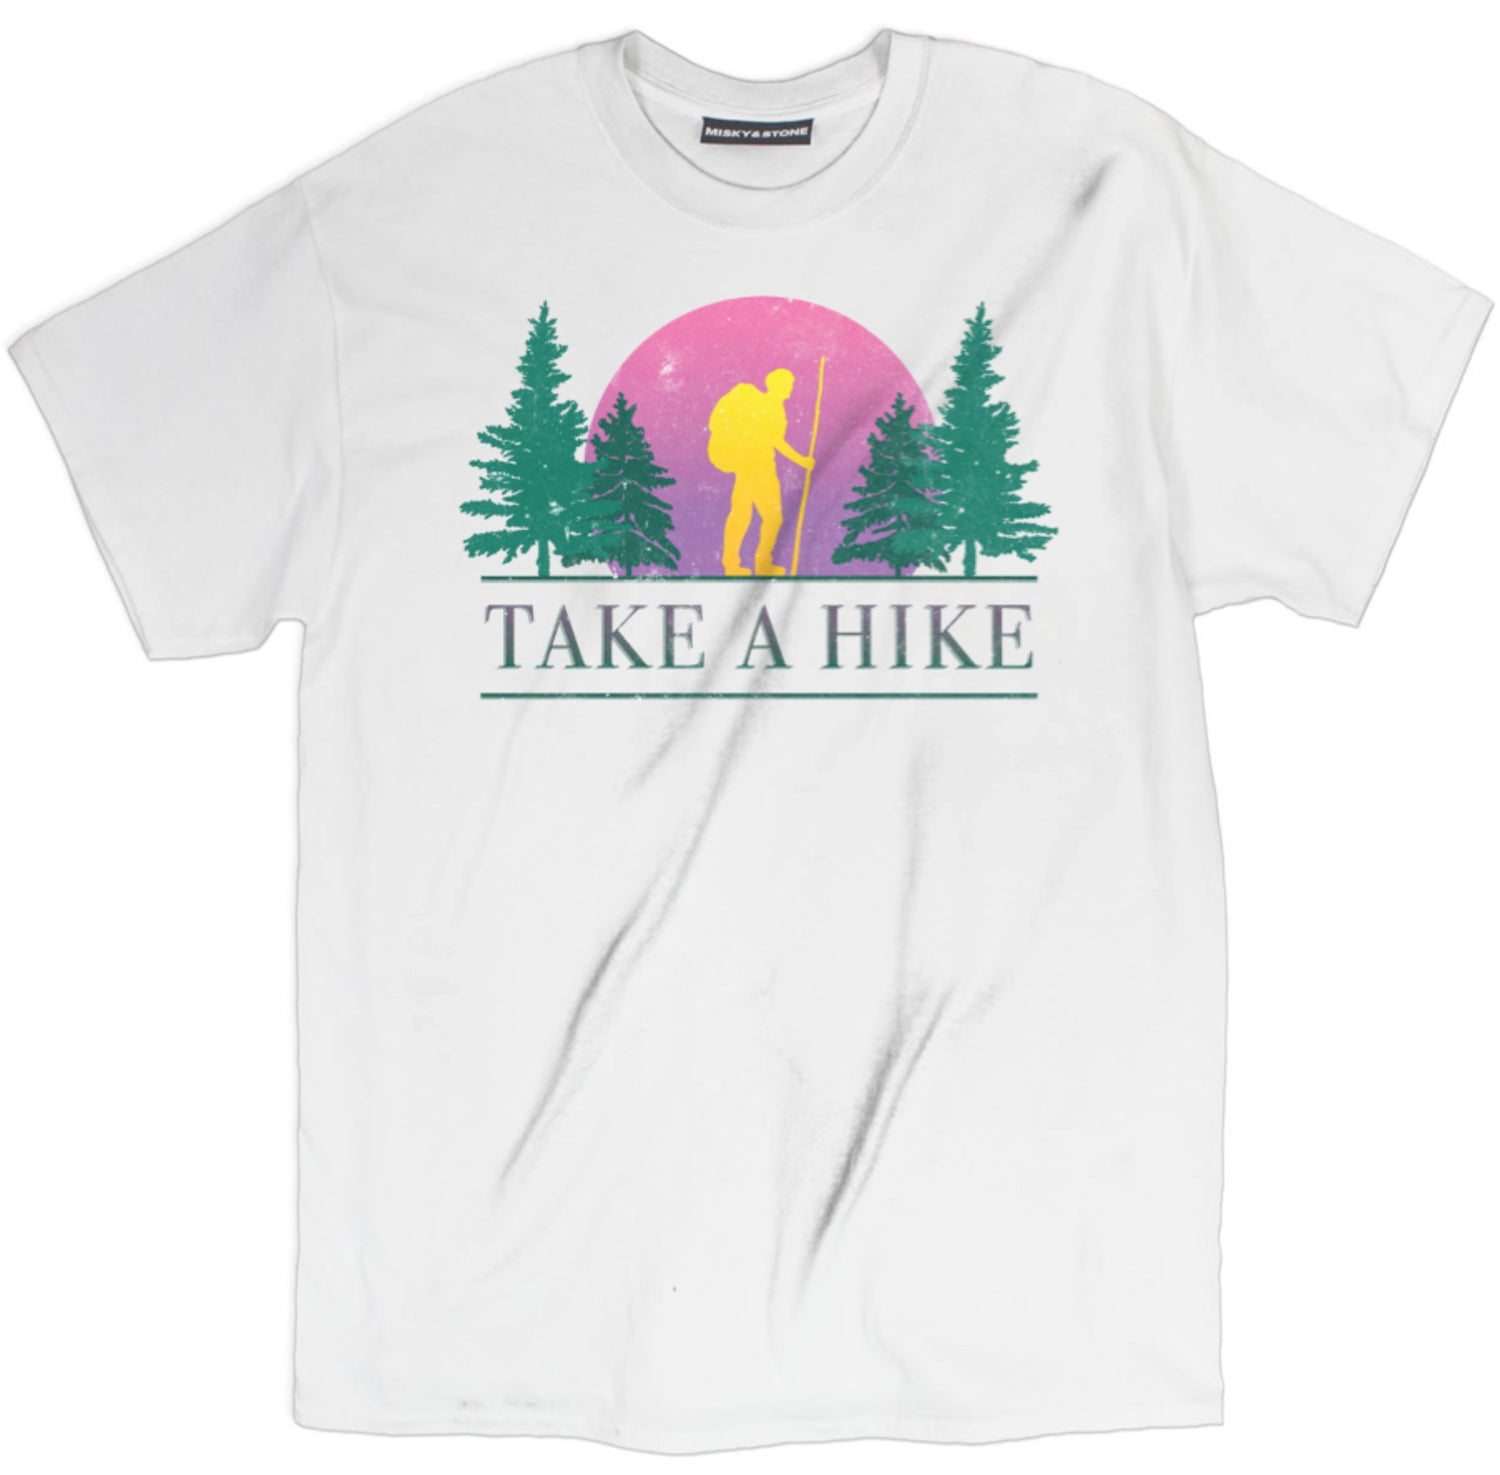 take a hike shirt, camping shirts, camp shirt, funny camping shirts, camping tee shirts, funny camping t shirts, camp t shirt designs, camp shirt designs, cool camp tees, cool camping tees, camping graphic tees, happy camper t shirt, cute camping shirts, camping tshirts, camper shirt,